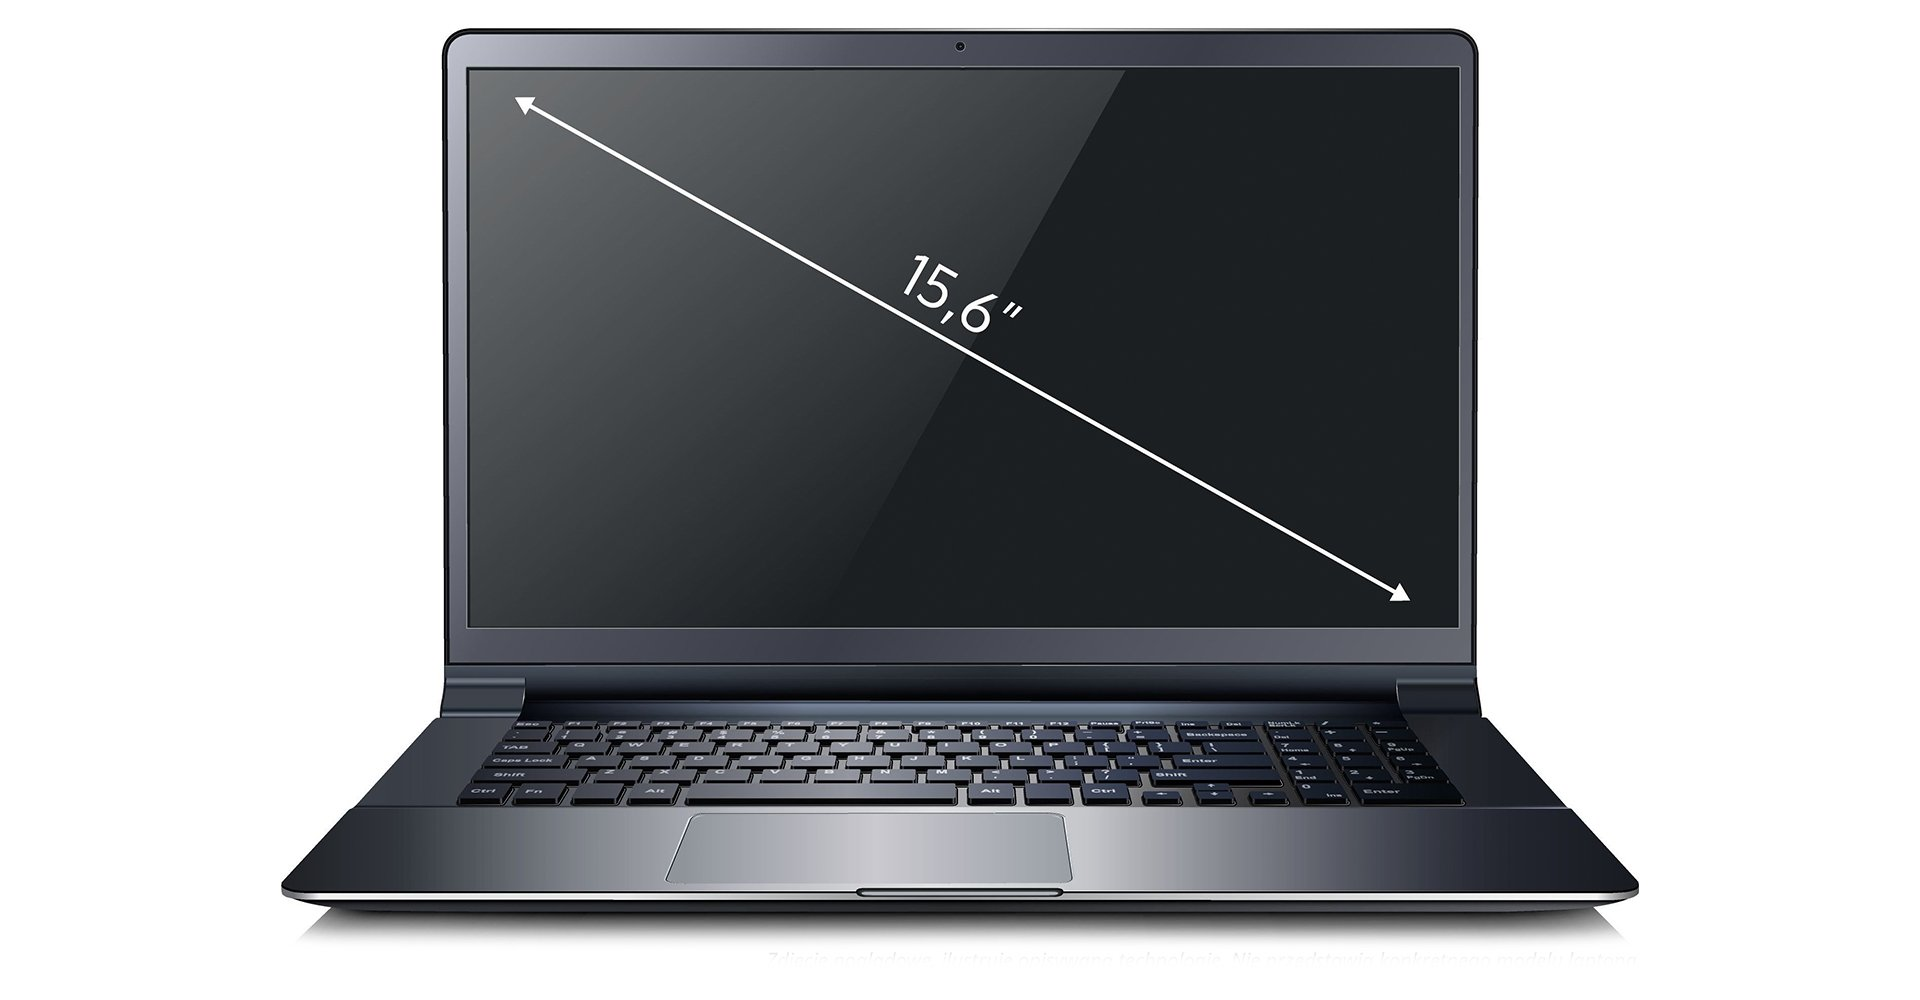 Lenovo Ideapad 330-15IKBK10 12 GB RAM/ 256 GB SSD/ Windows 10 Home                             15.6-tollise diagonaaliga